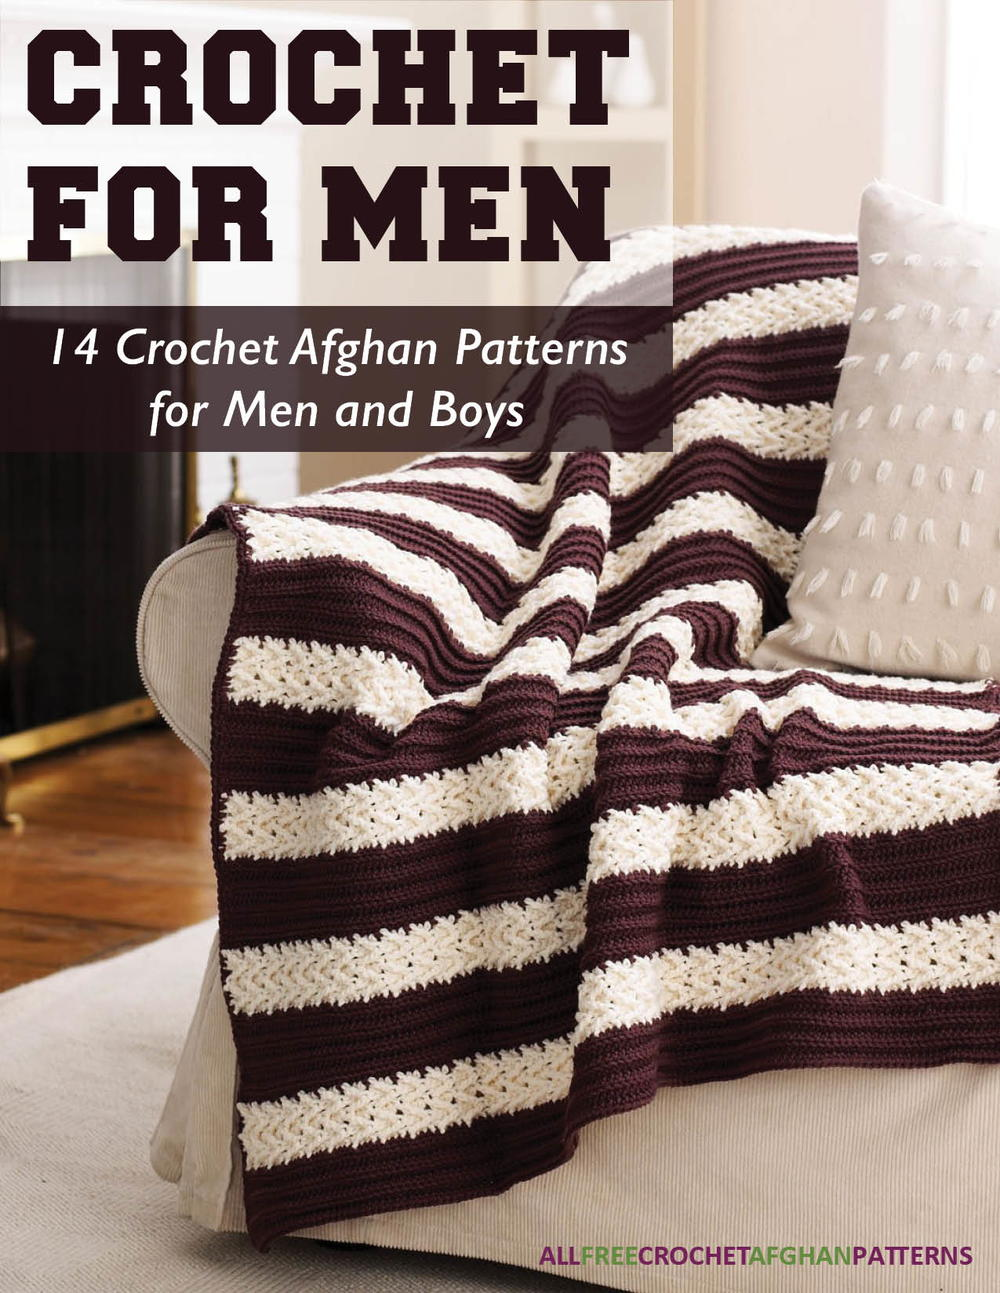 Crochet for men 14 crochet afghan patterns for men and boys free crochet for men 14 crochet afghan patterns for men and boys free ebook allfreecrochetafghanpatterns bankloansurffo Images